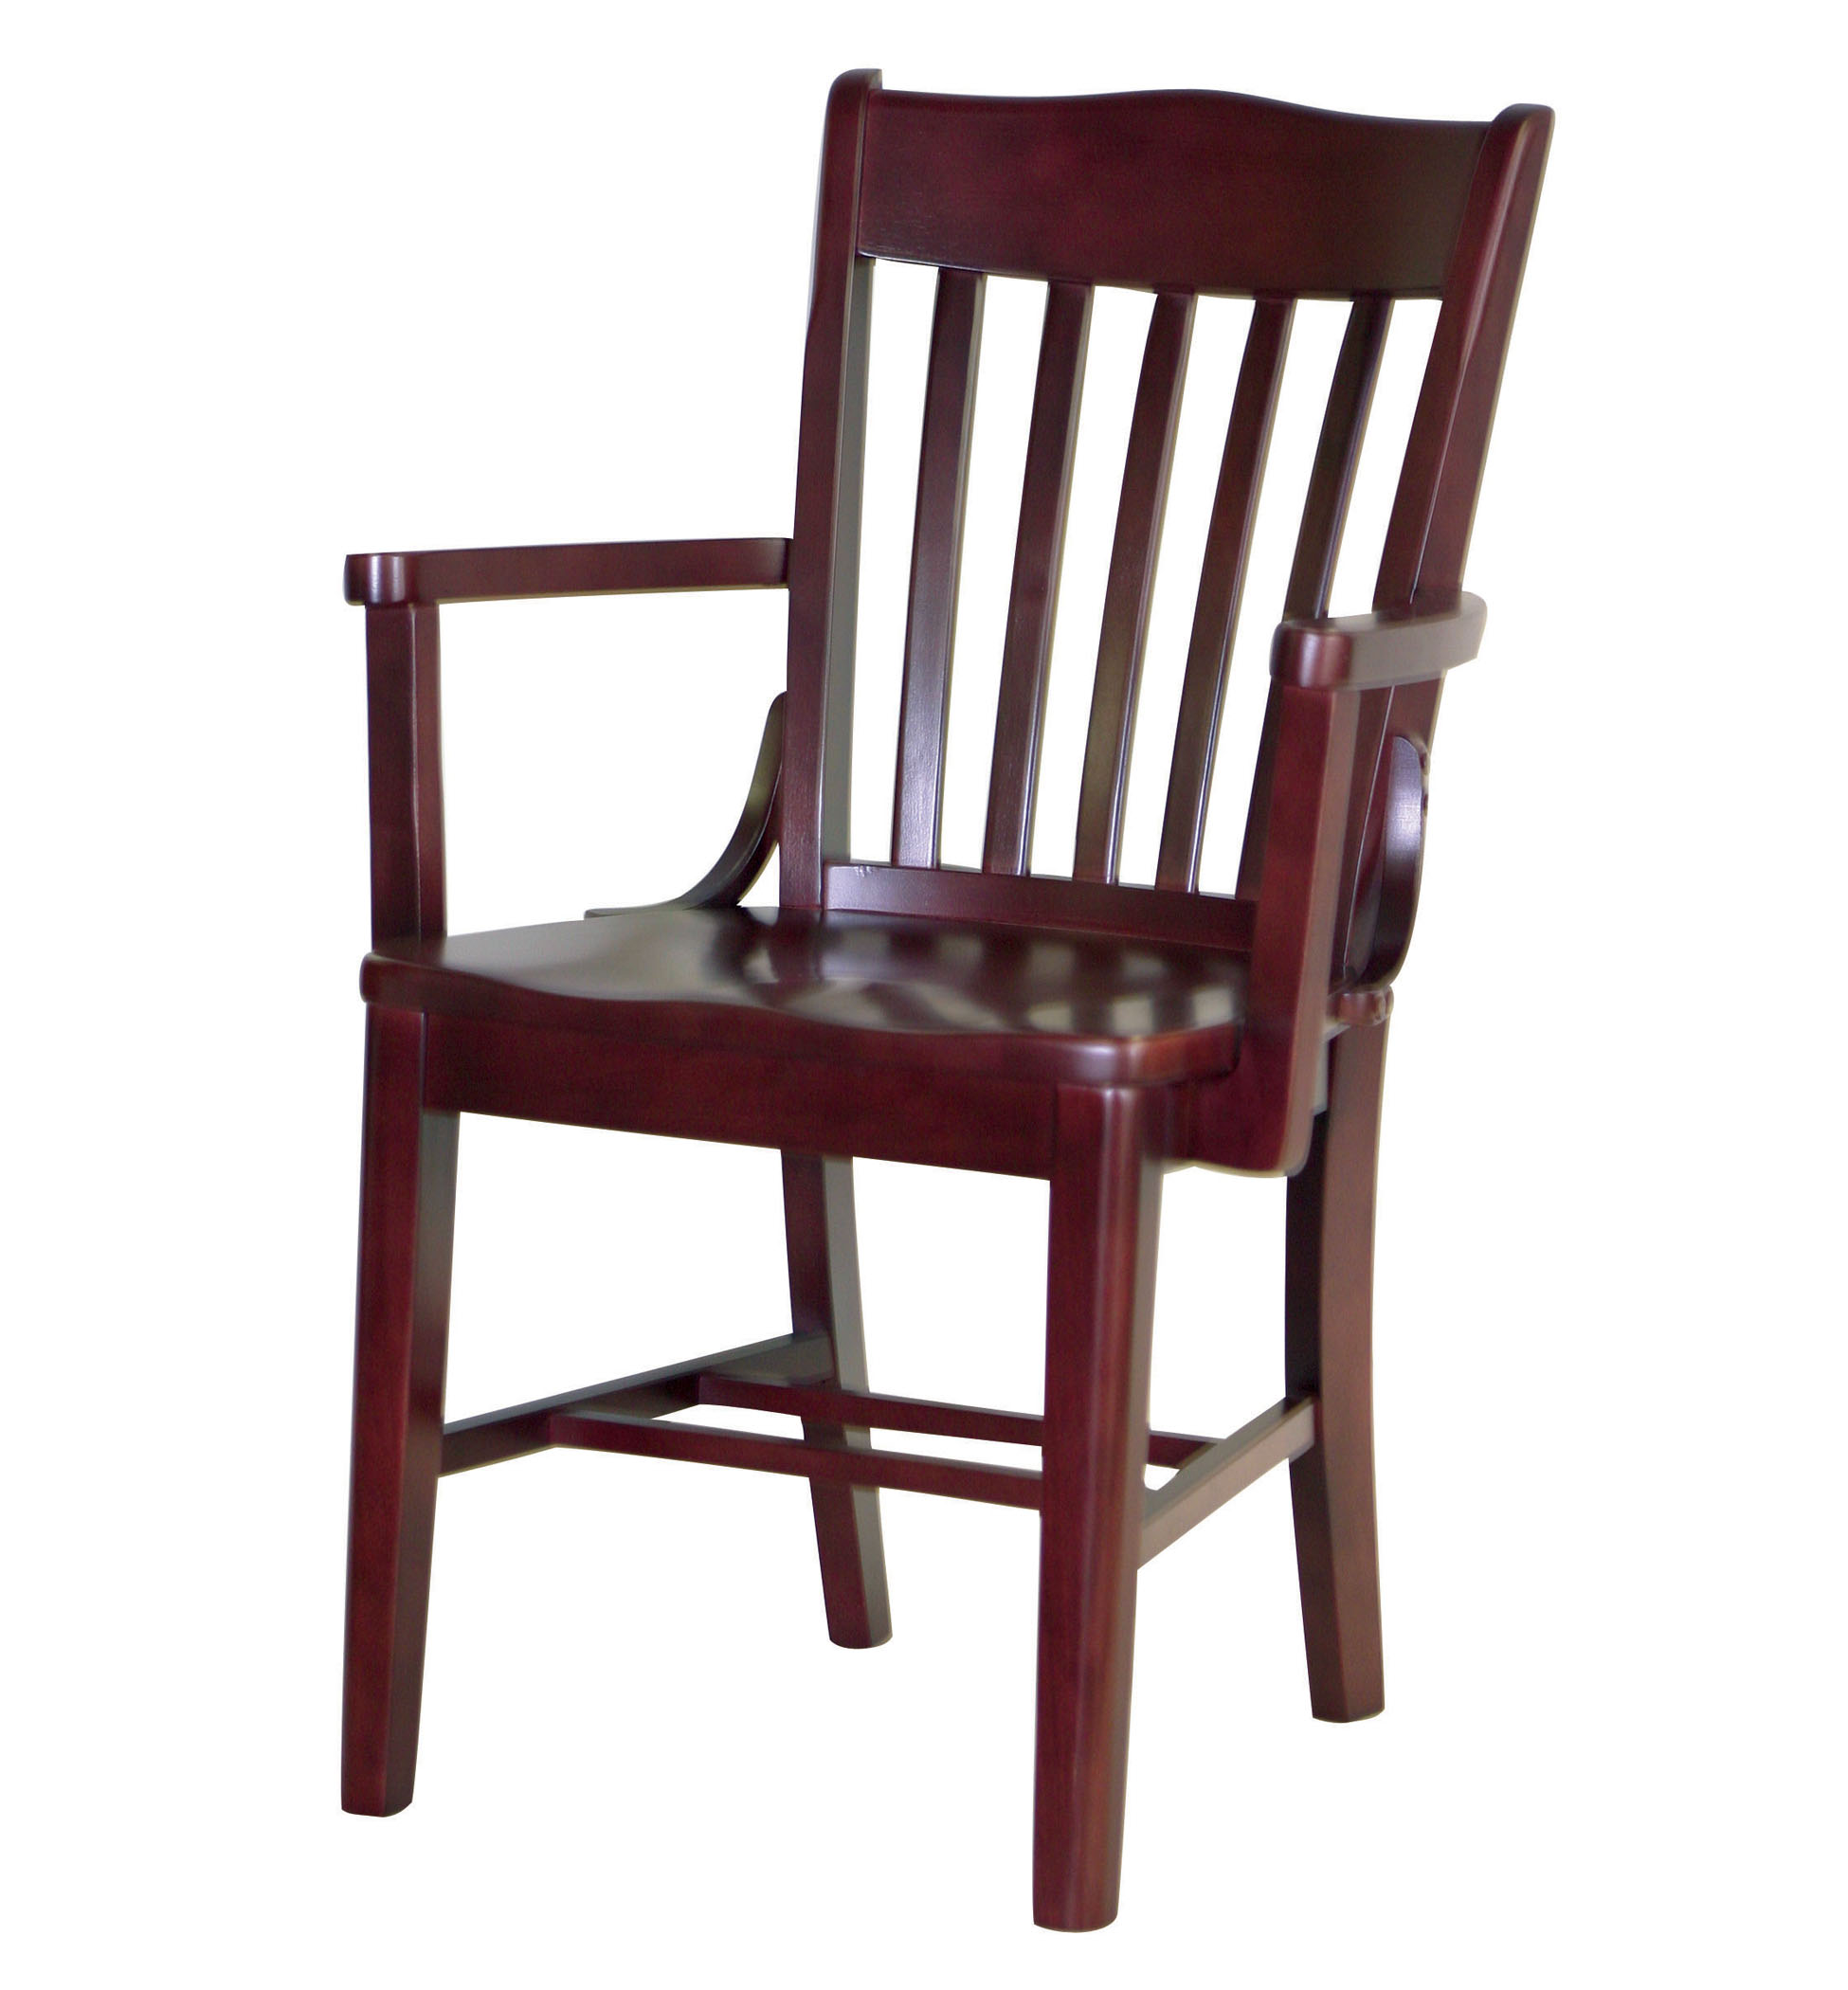 Wooden Chairs With Arms 7035 1 Wood Arm Chair